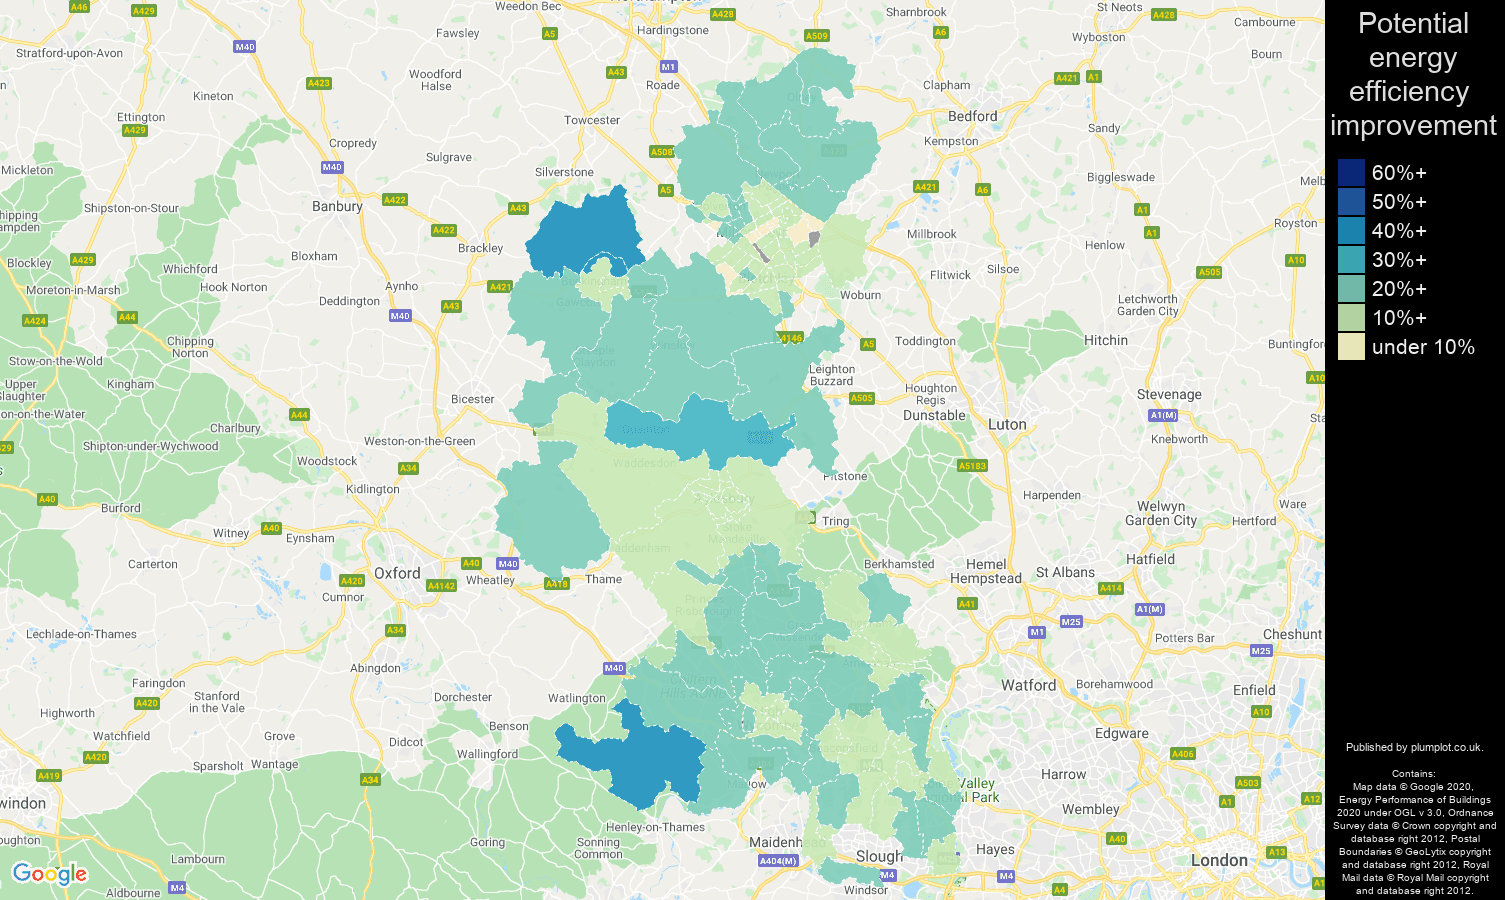 Buckinghamshire map of potential energy efficiency improvement of properties